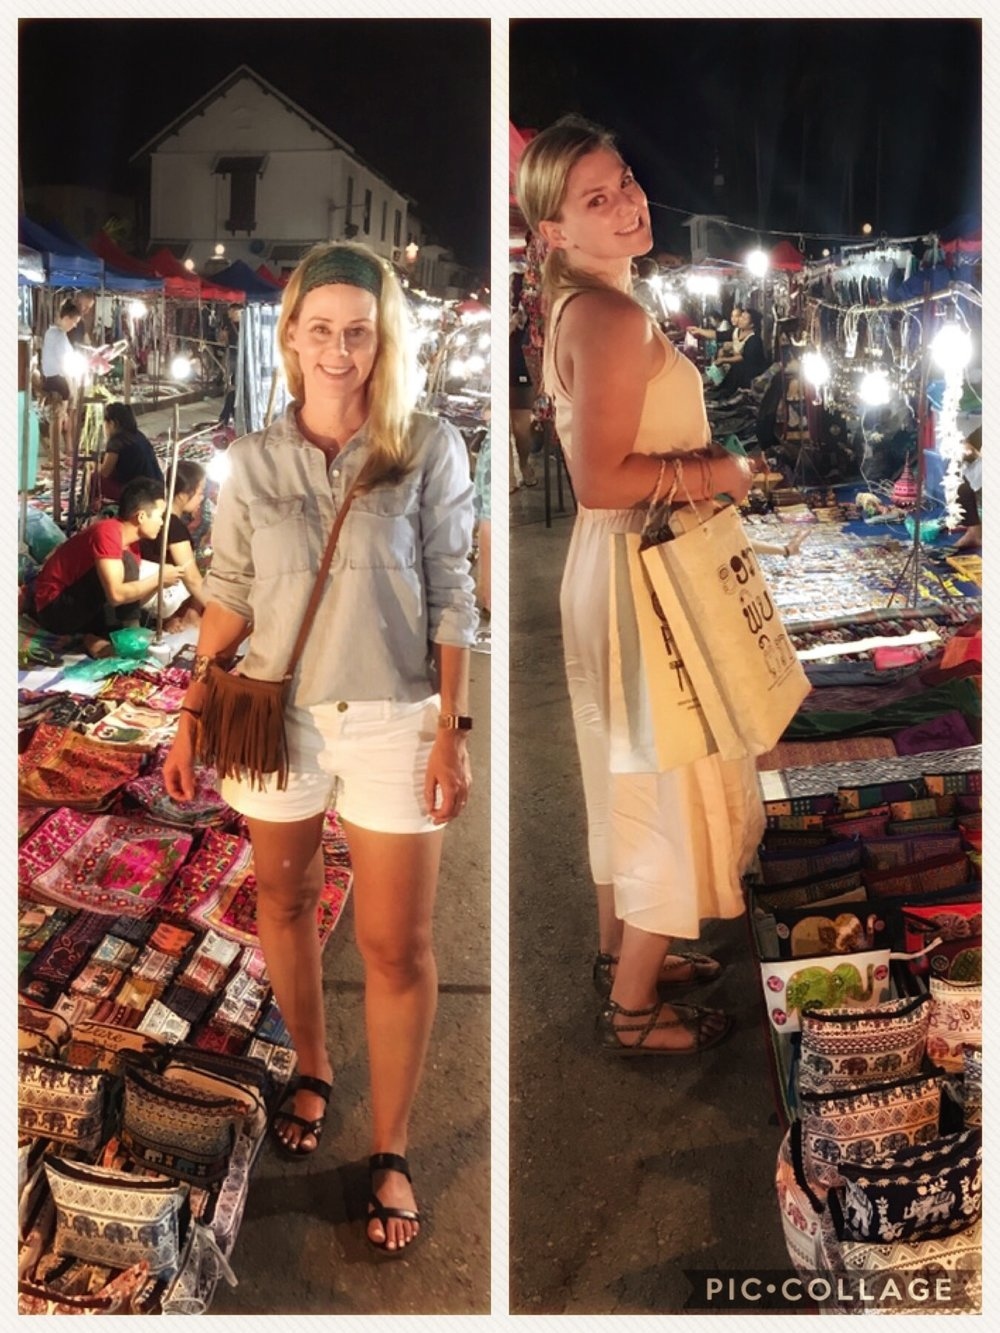 My Bestie Lauren + I shopping at the night market.